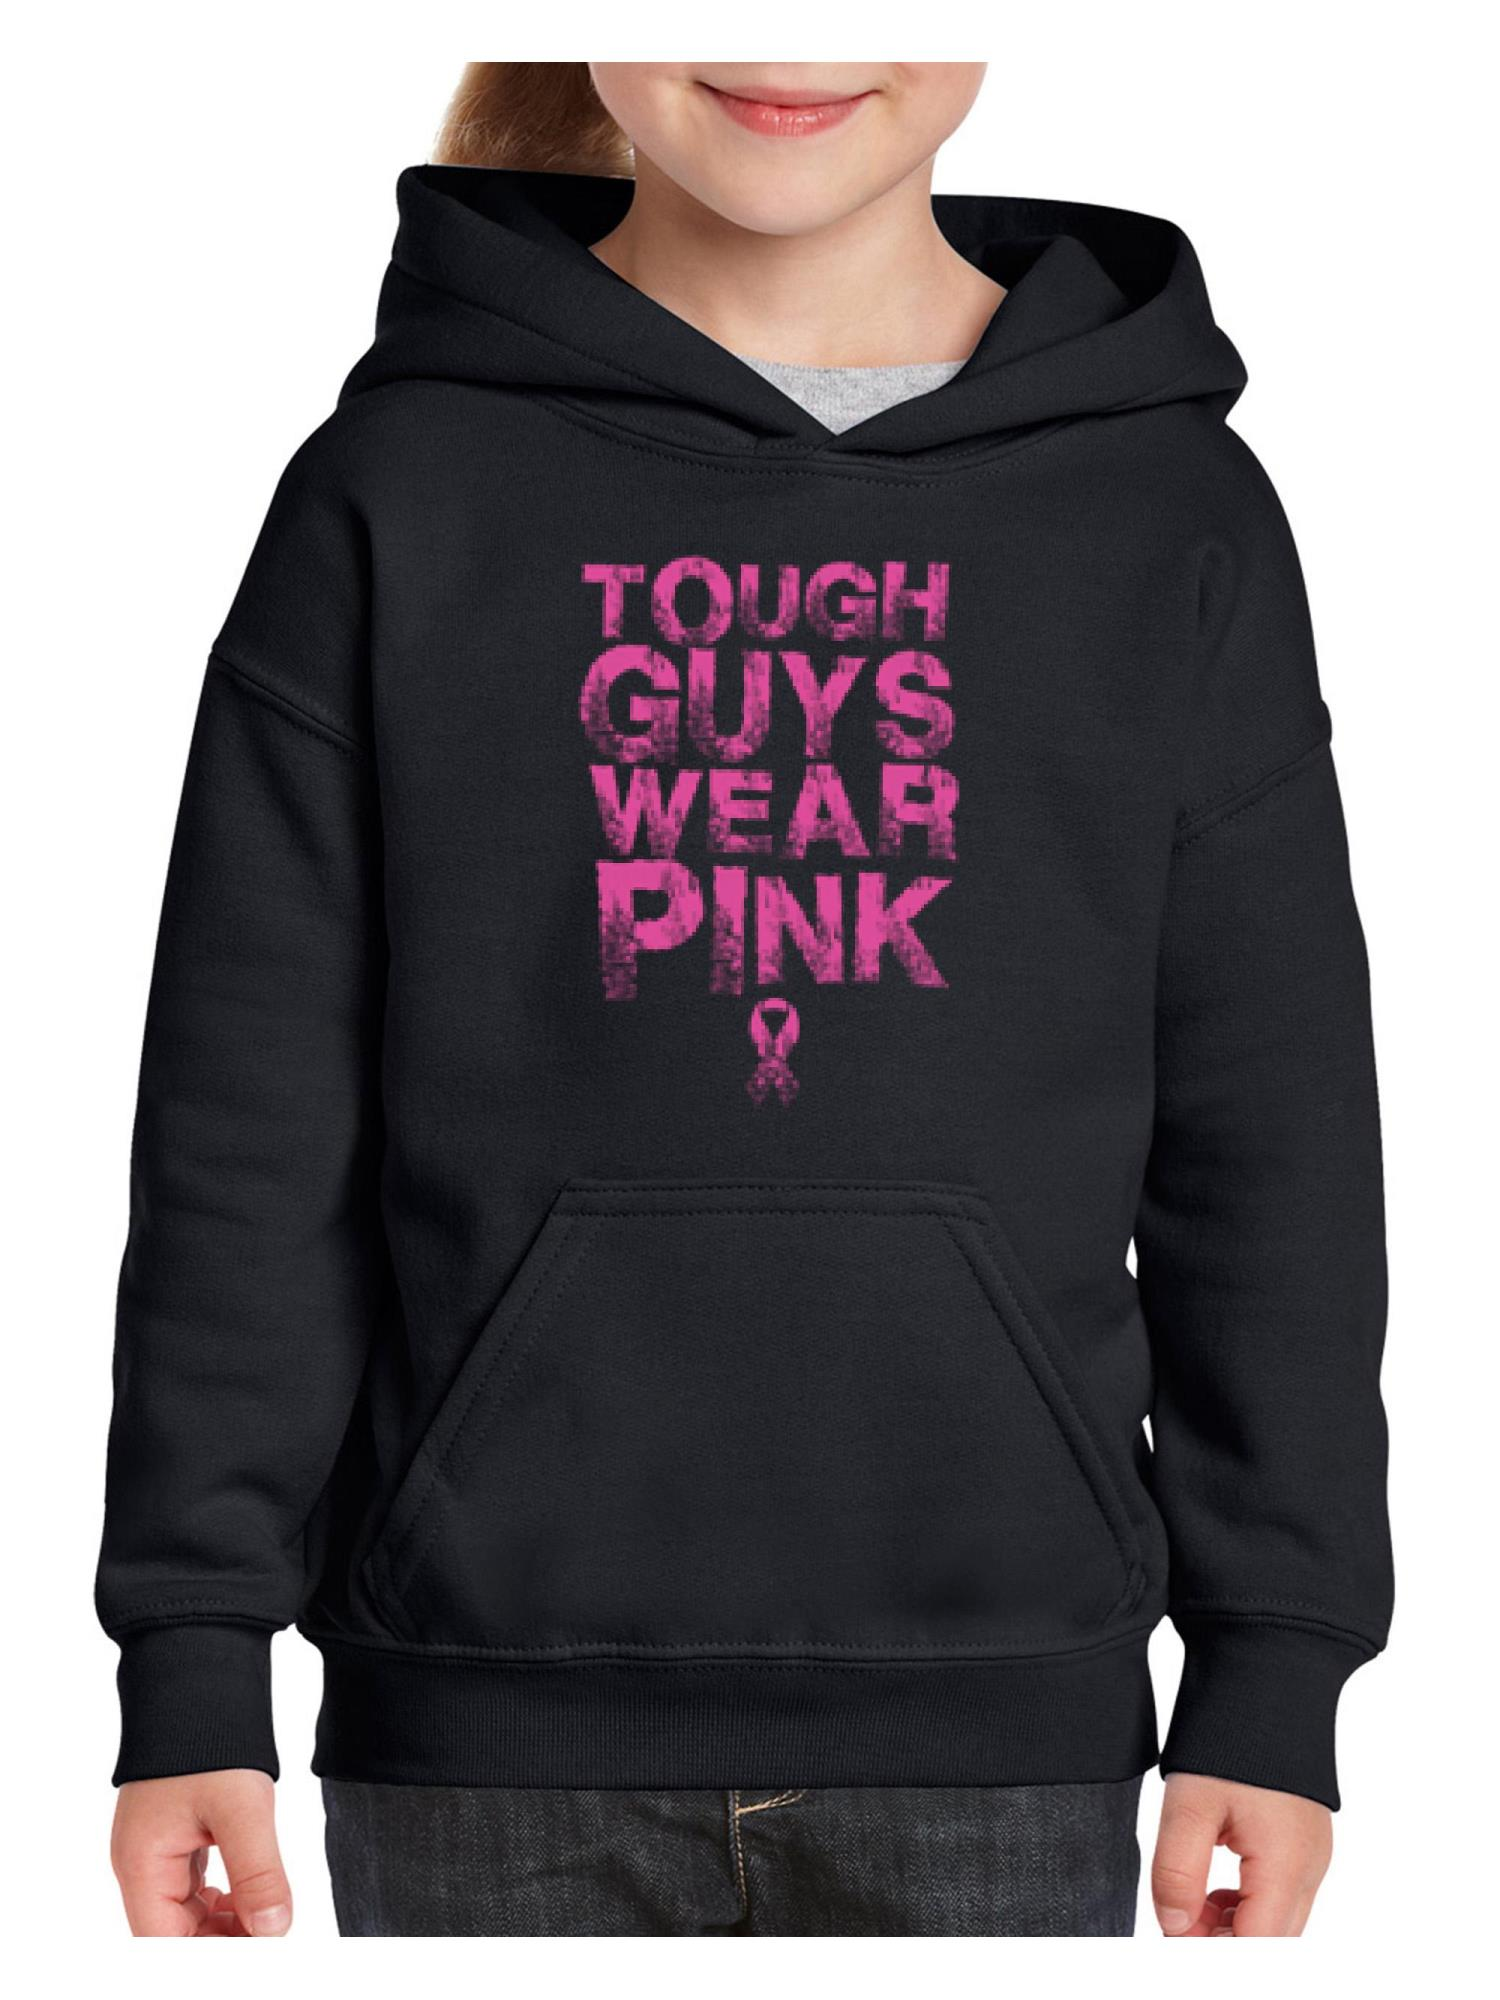 Tough Guys Wear Pink Breast Cancer Awareness Unisex Hoodie For Girls and Boys Youth Sweatshirt